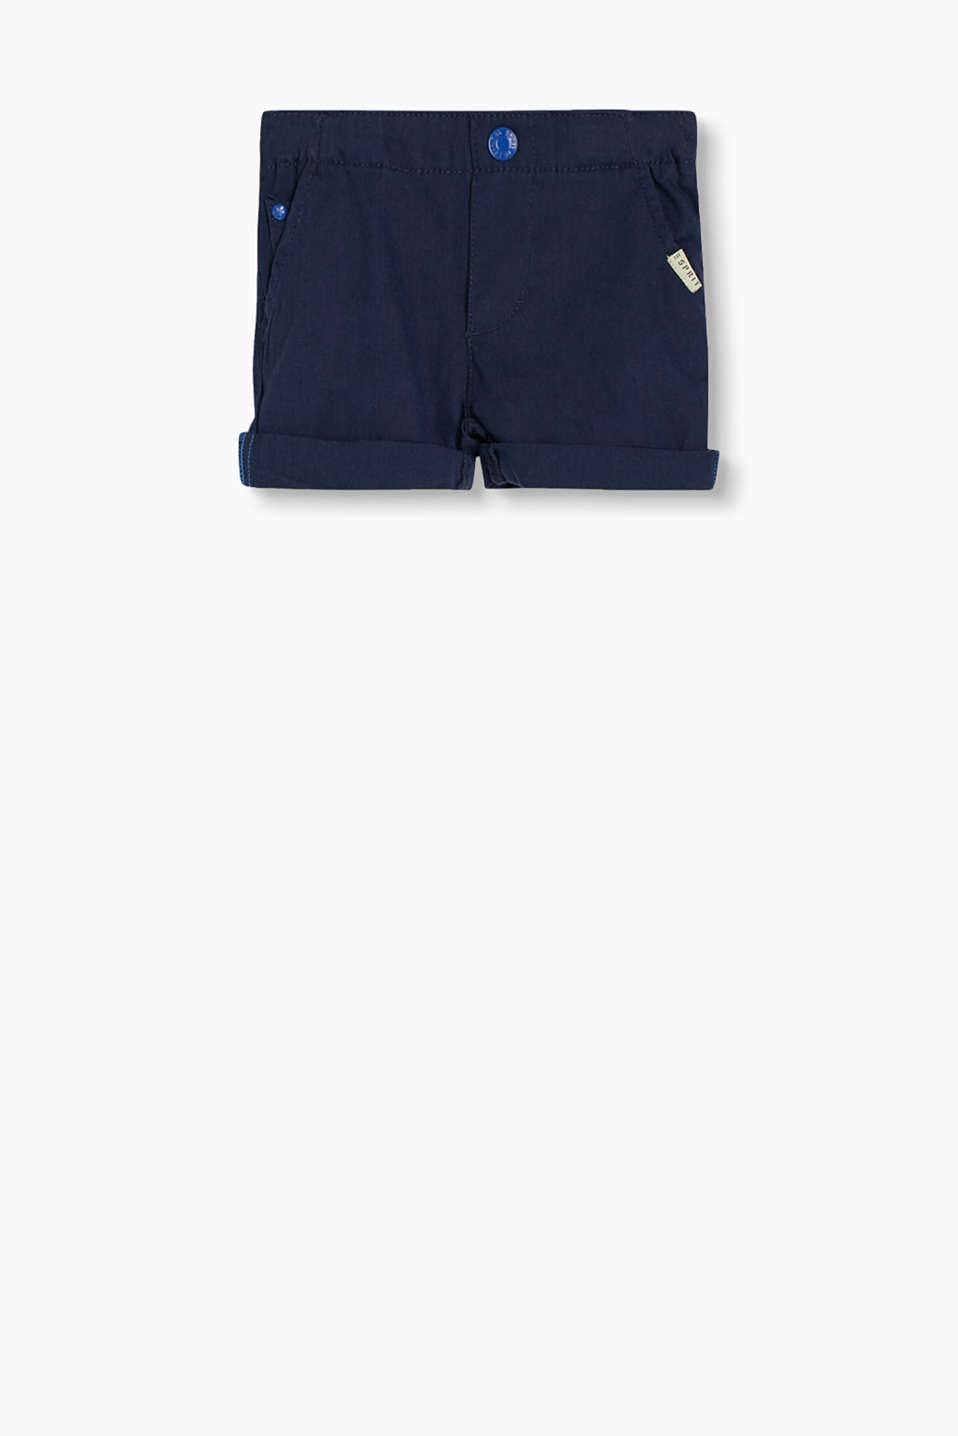 Soft cotton shorts with fixed roll-up hems and adjustable elasticated waistband